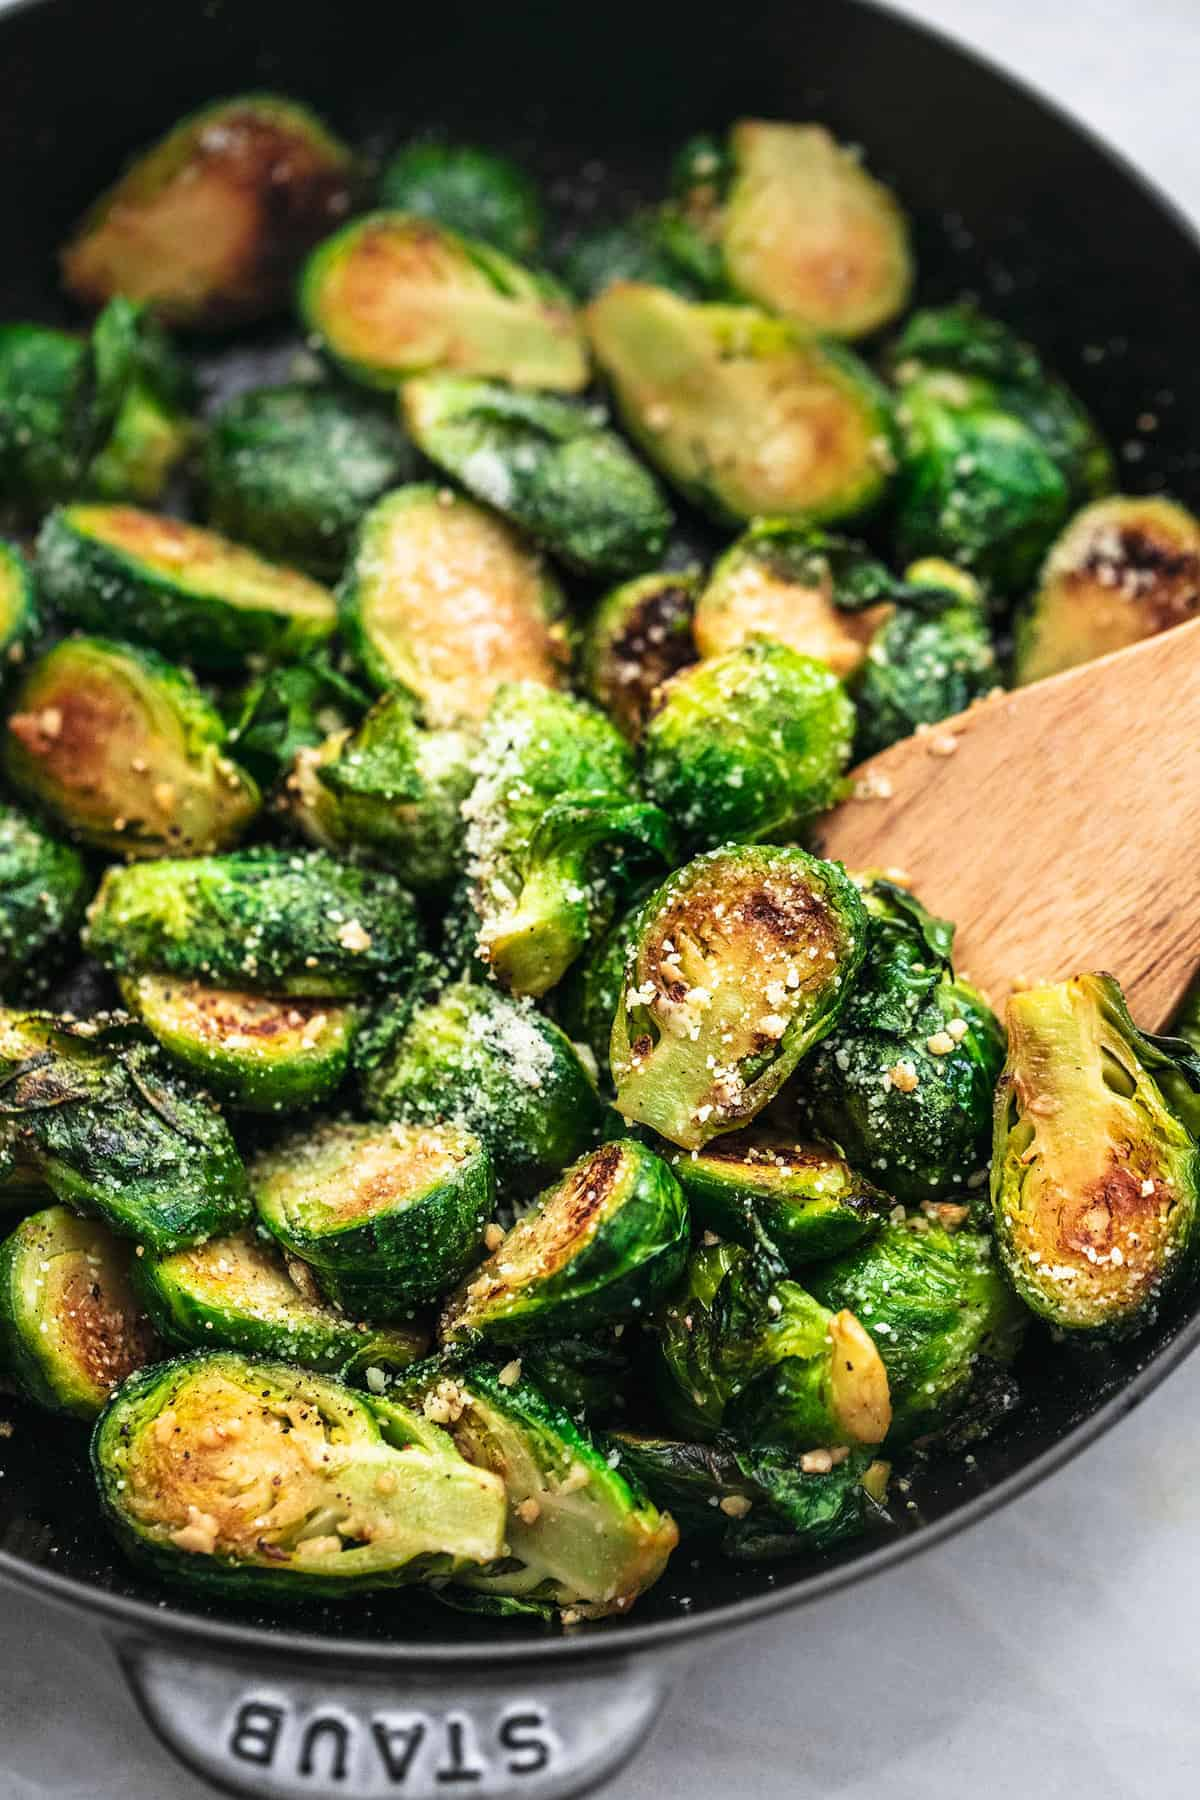 Halved brussels sprouts covered in powdered parmesan in a black skillet.